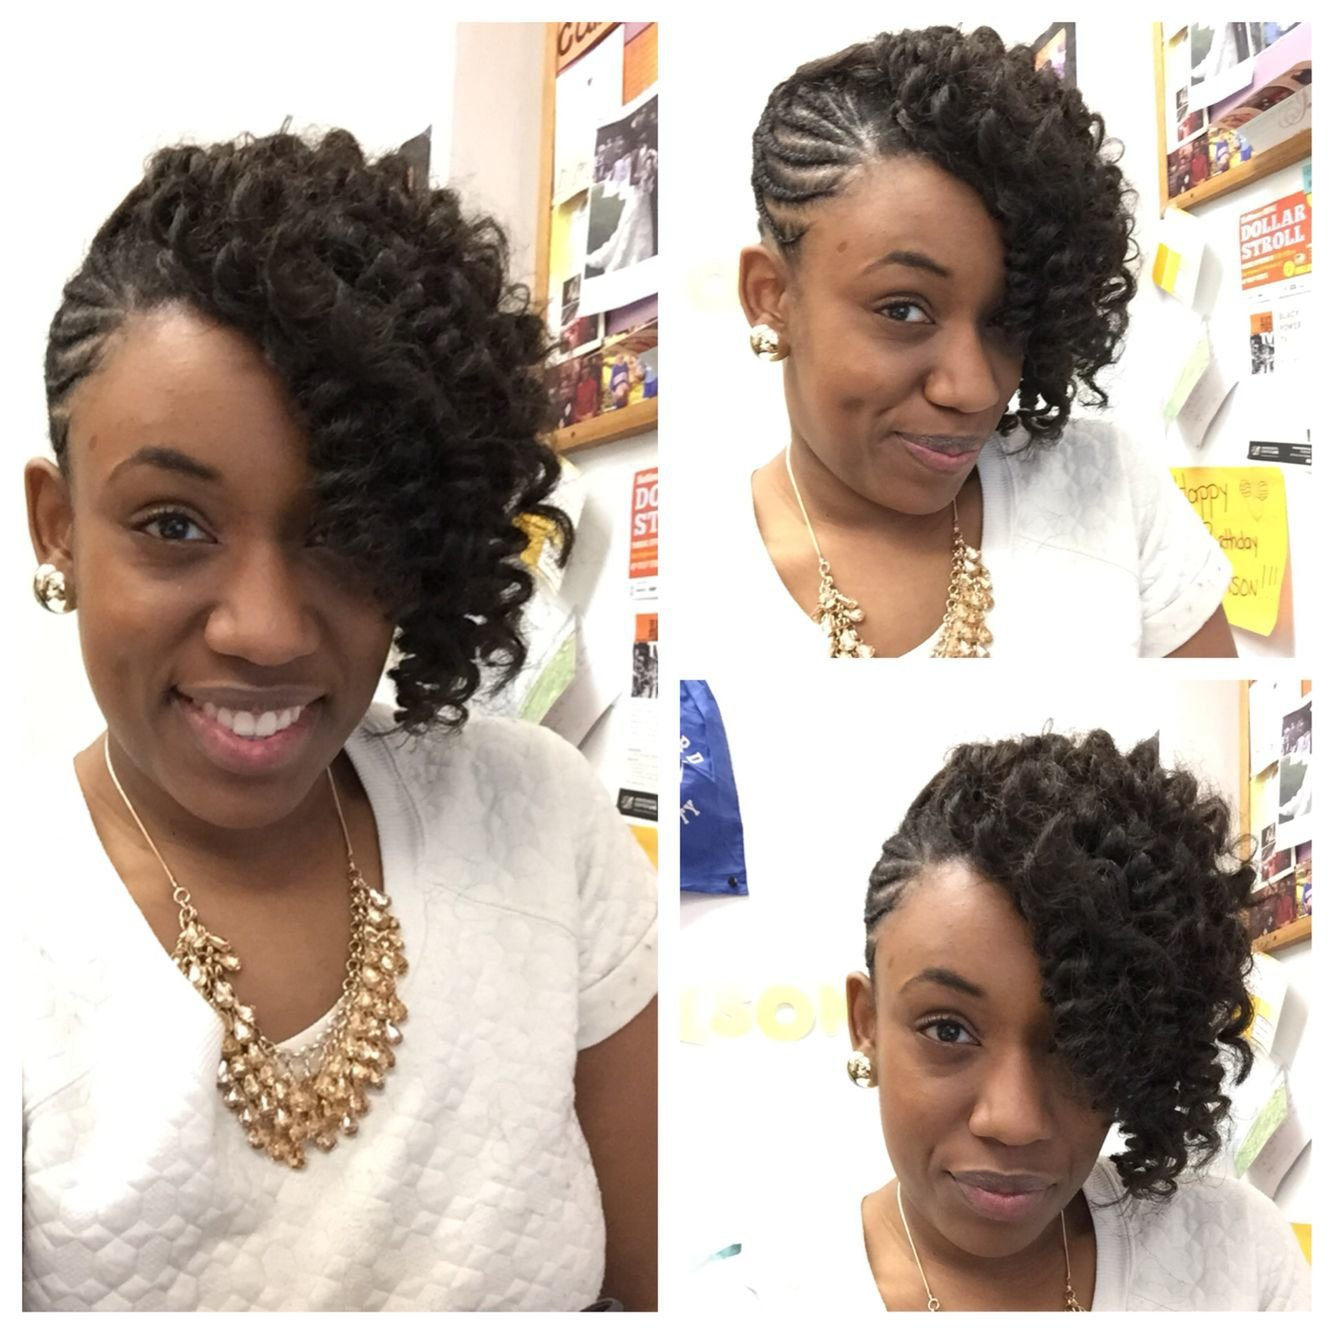 Free Braided Updo With Kanekalon Hair Crocheted And Curled To Wallpaper